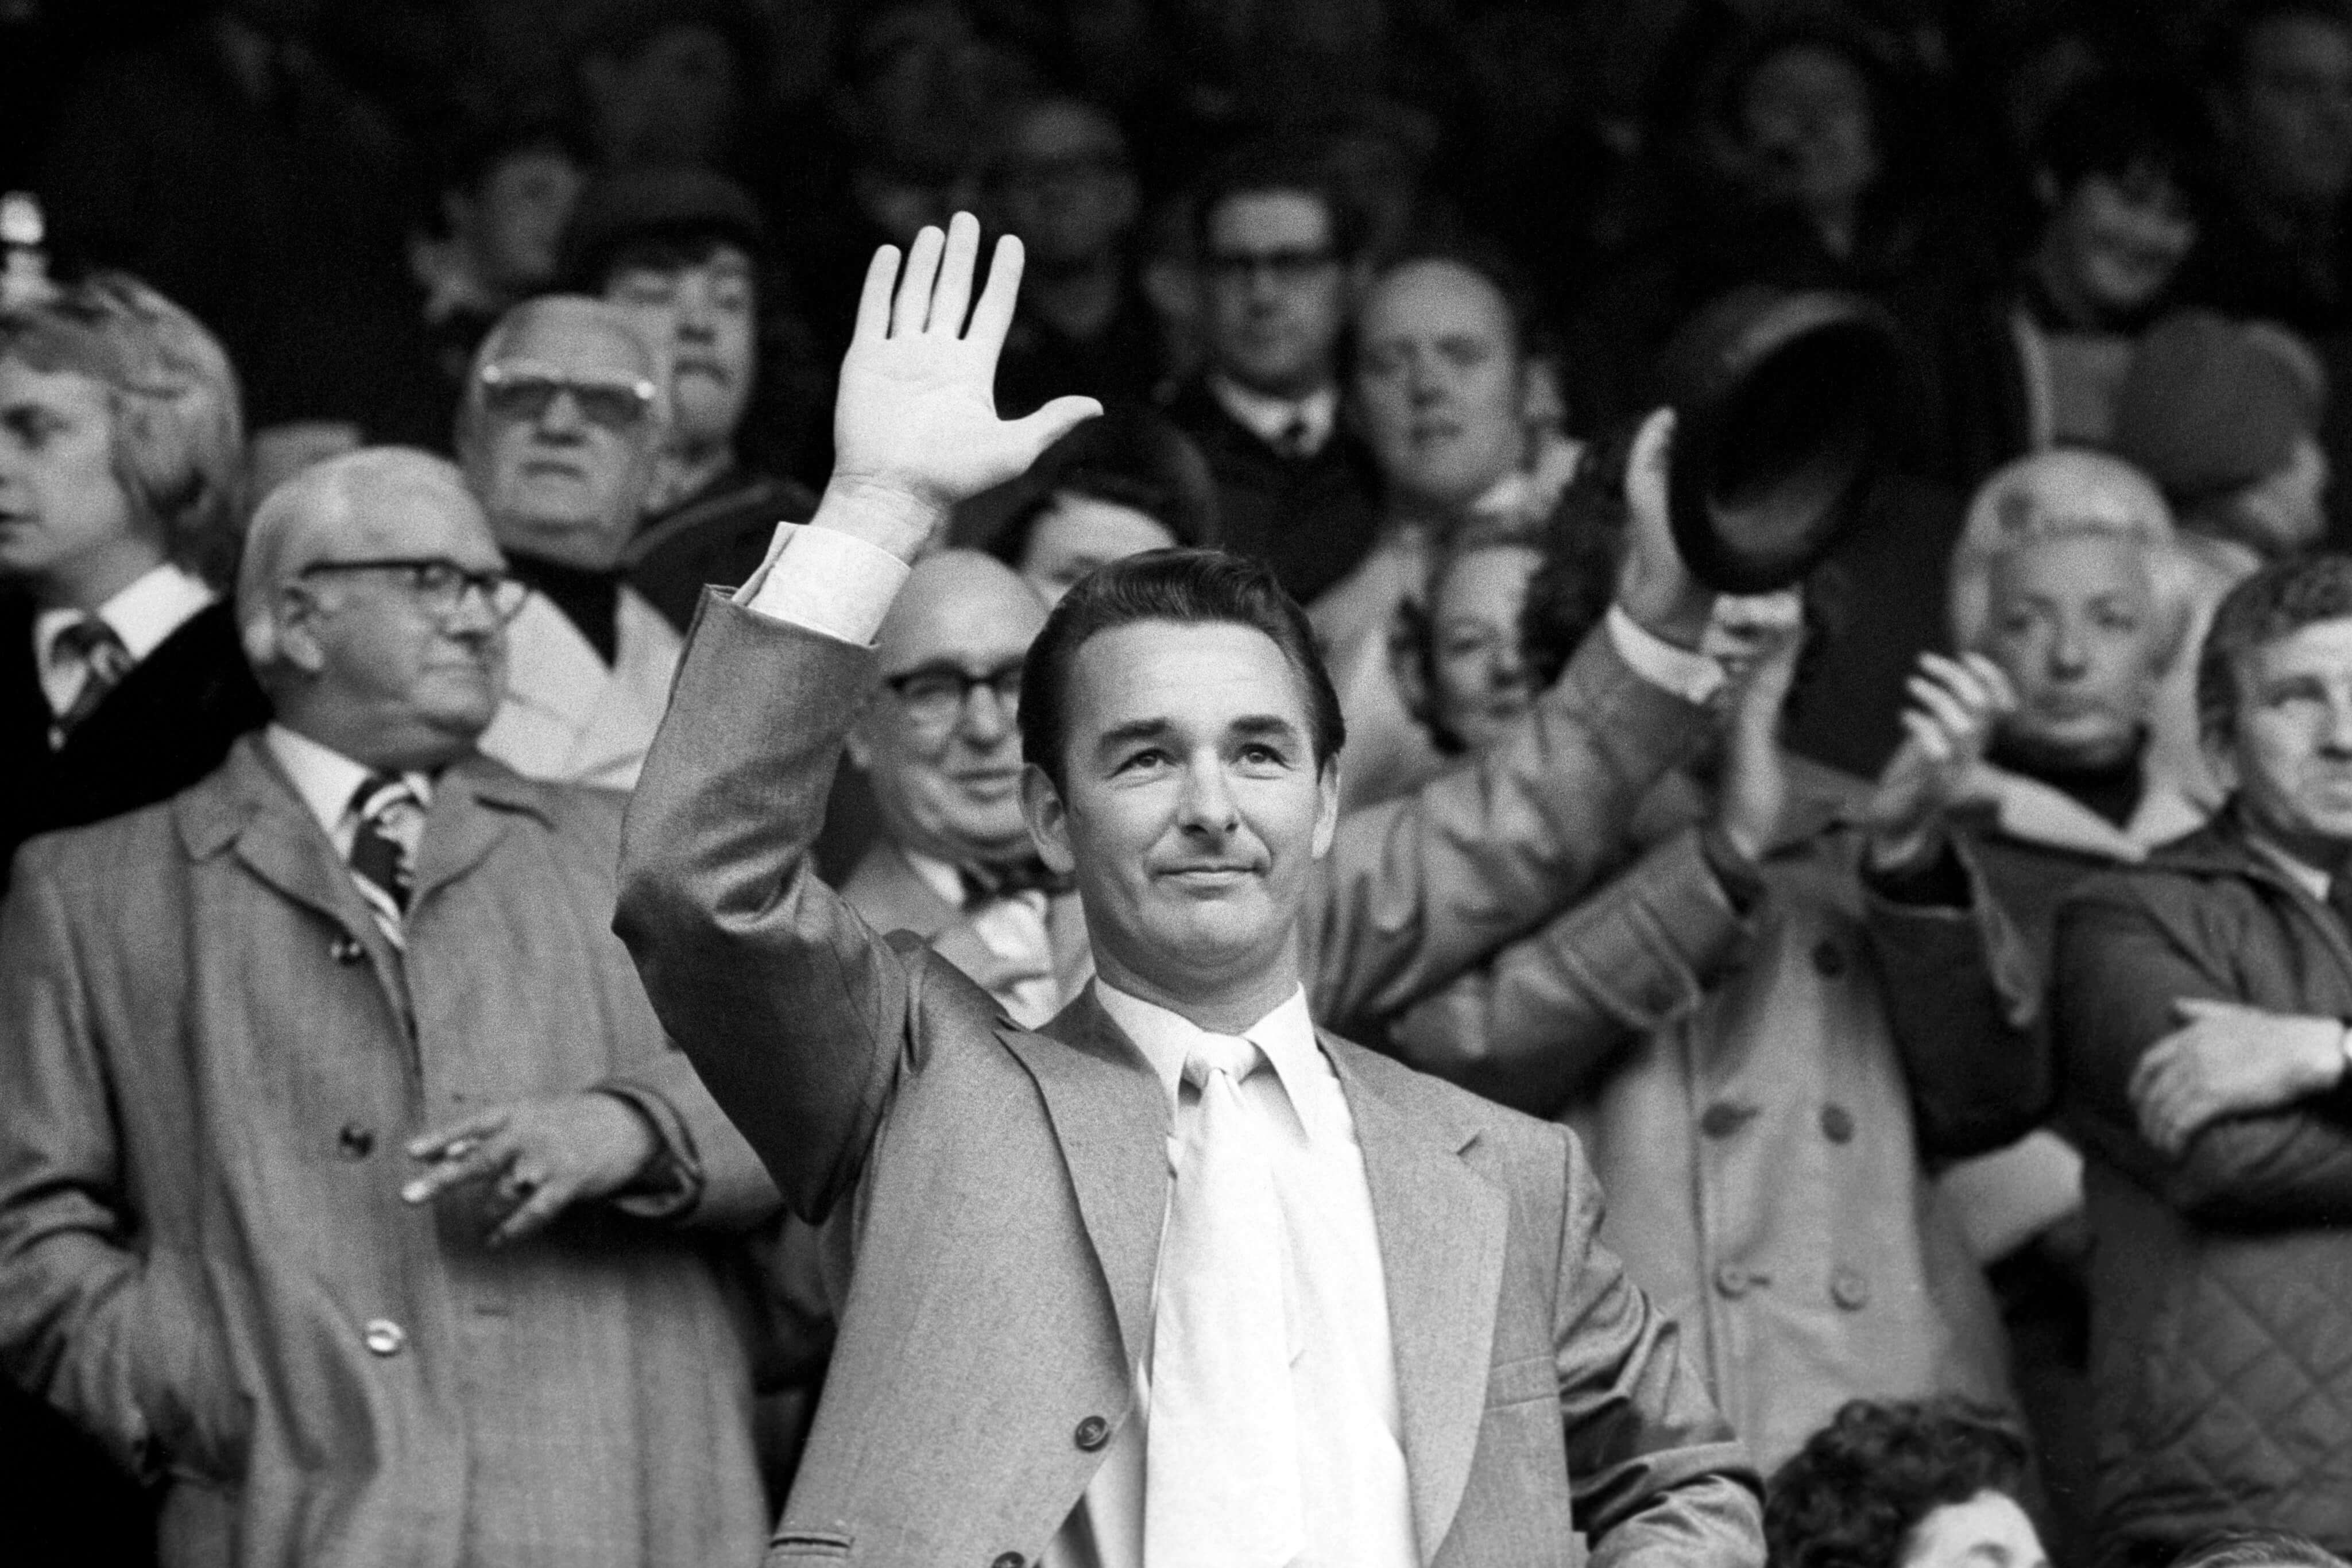 Highs and Lows: Brian Clough's very contrasting spells at Derby & Leeds